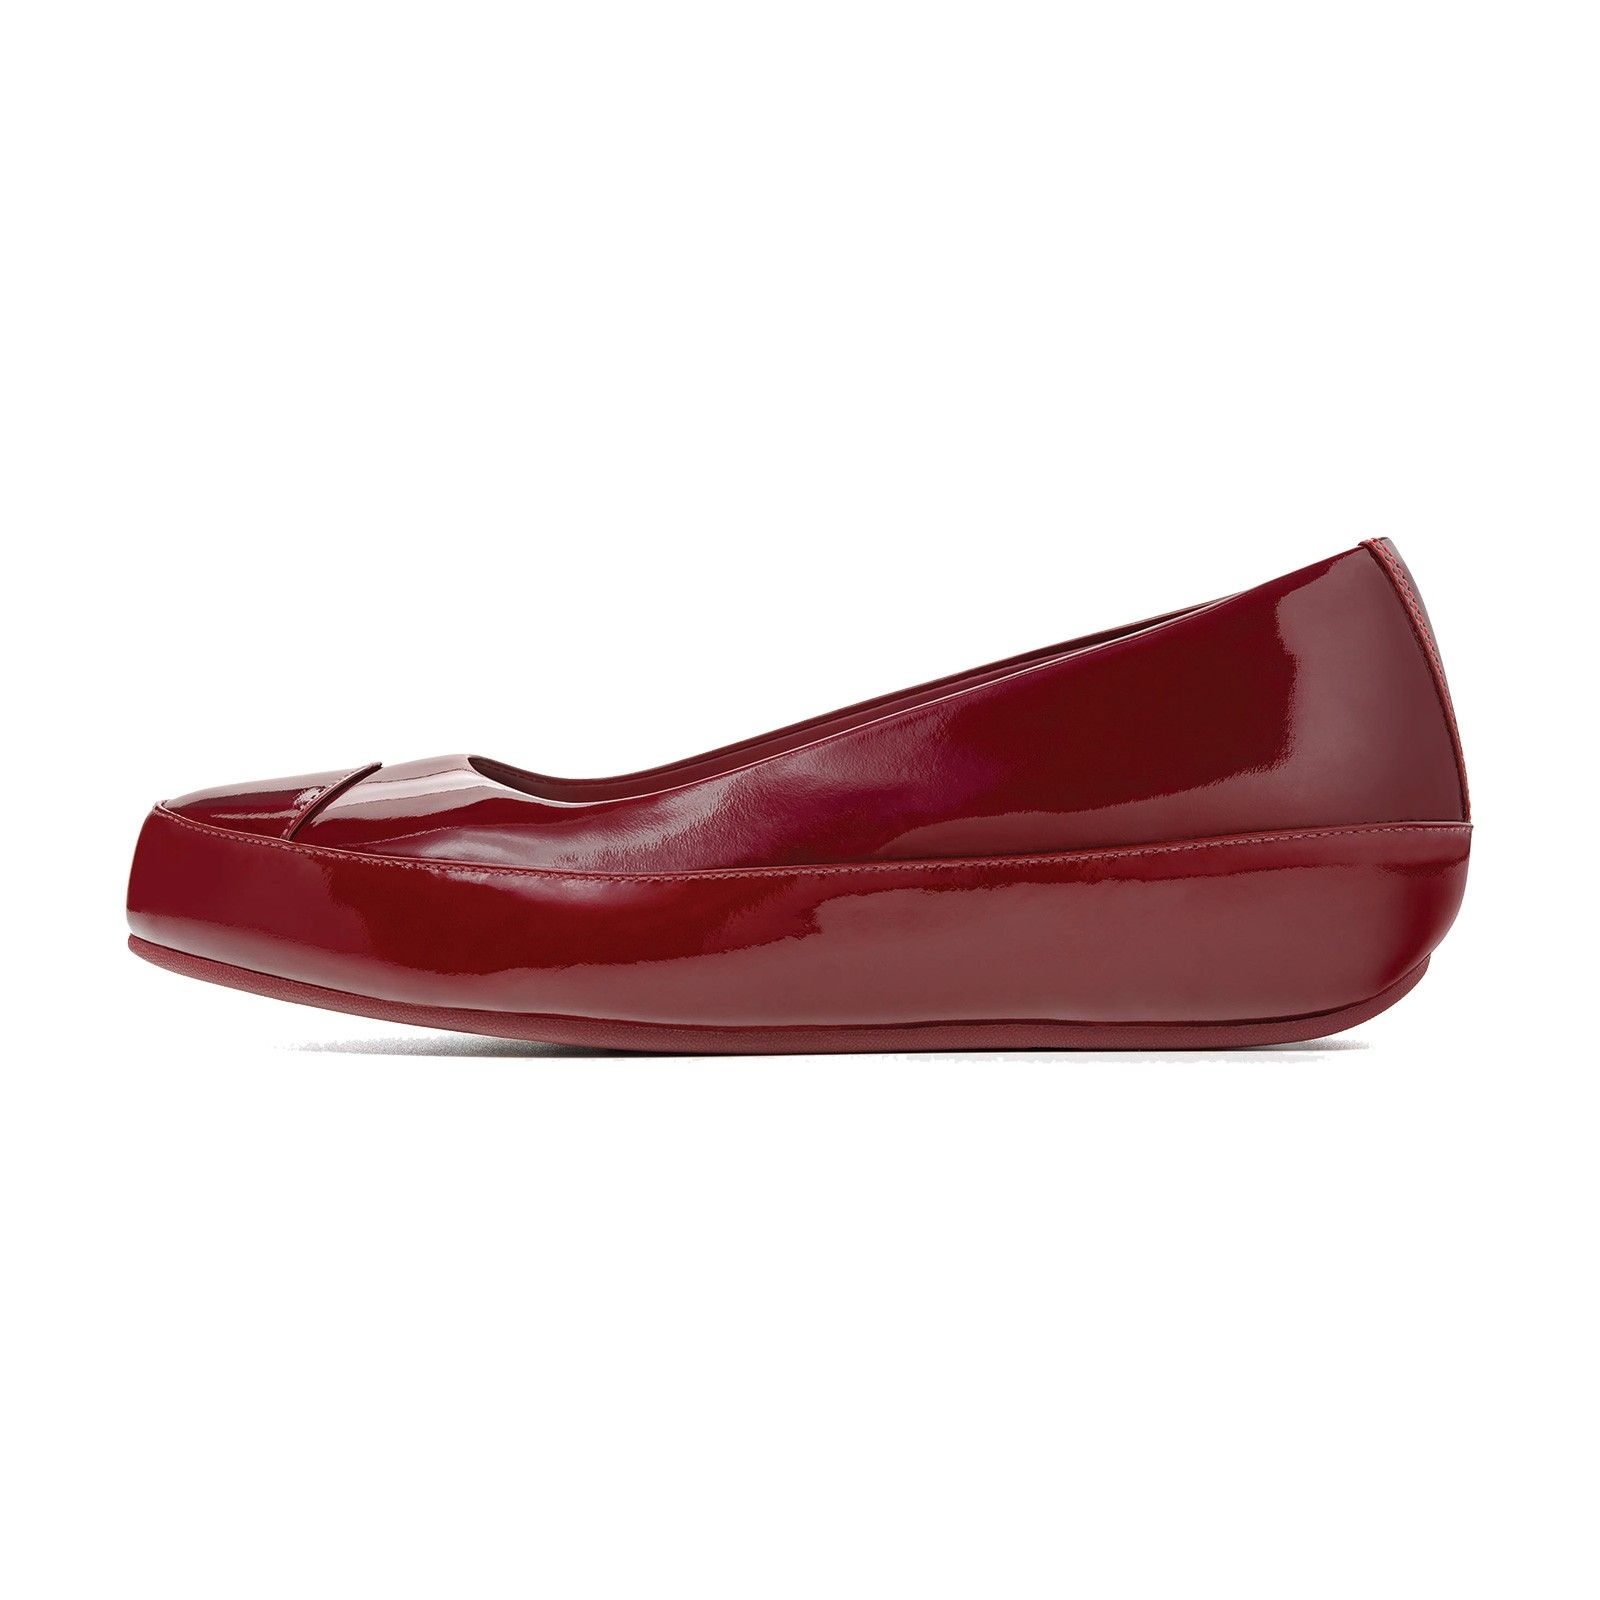 a837219fb7f2 FitFlop Due Patent Hot Cherry   I need these shoes. Neeeeeed ...